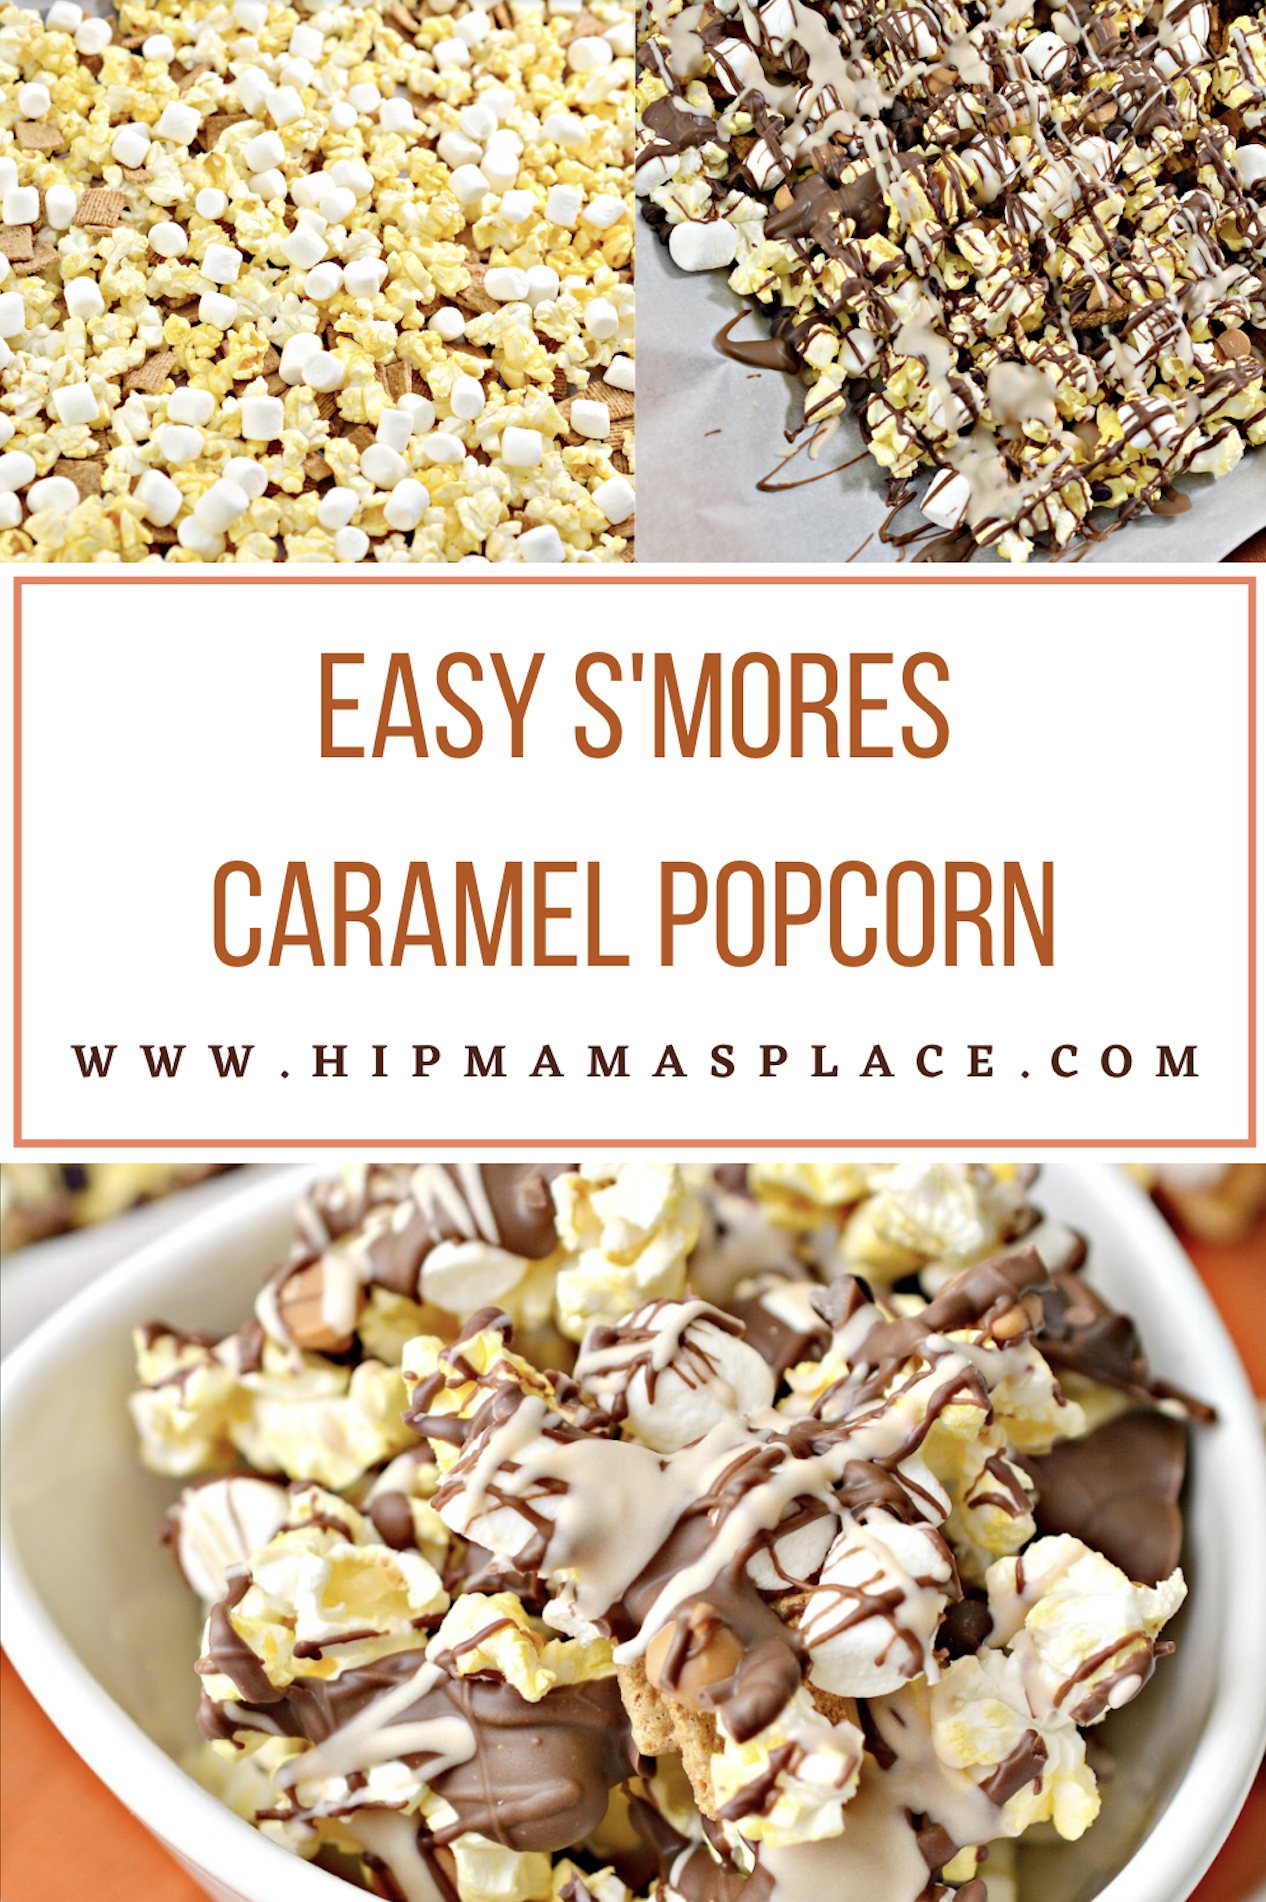 You'll love this easy, yummy, no bake sweet treat: S'mores Caramel Popcorn with marshmallow-ey chocolate caramel goodness...mmm.. so good!